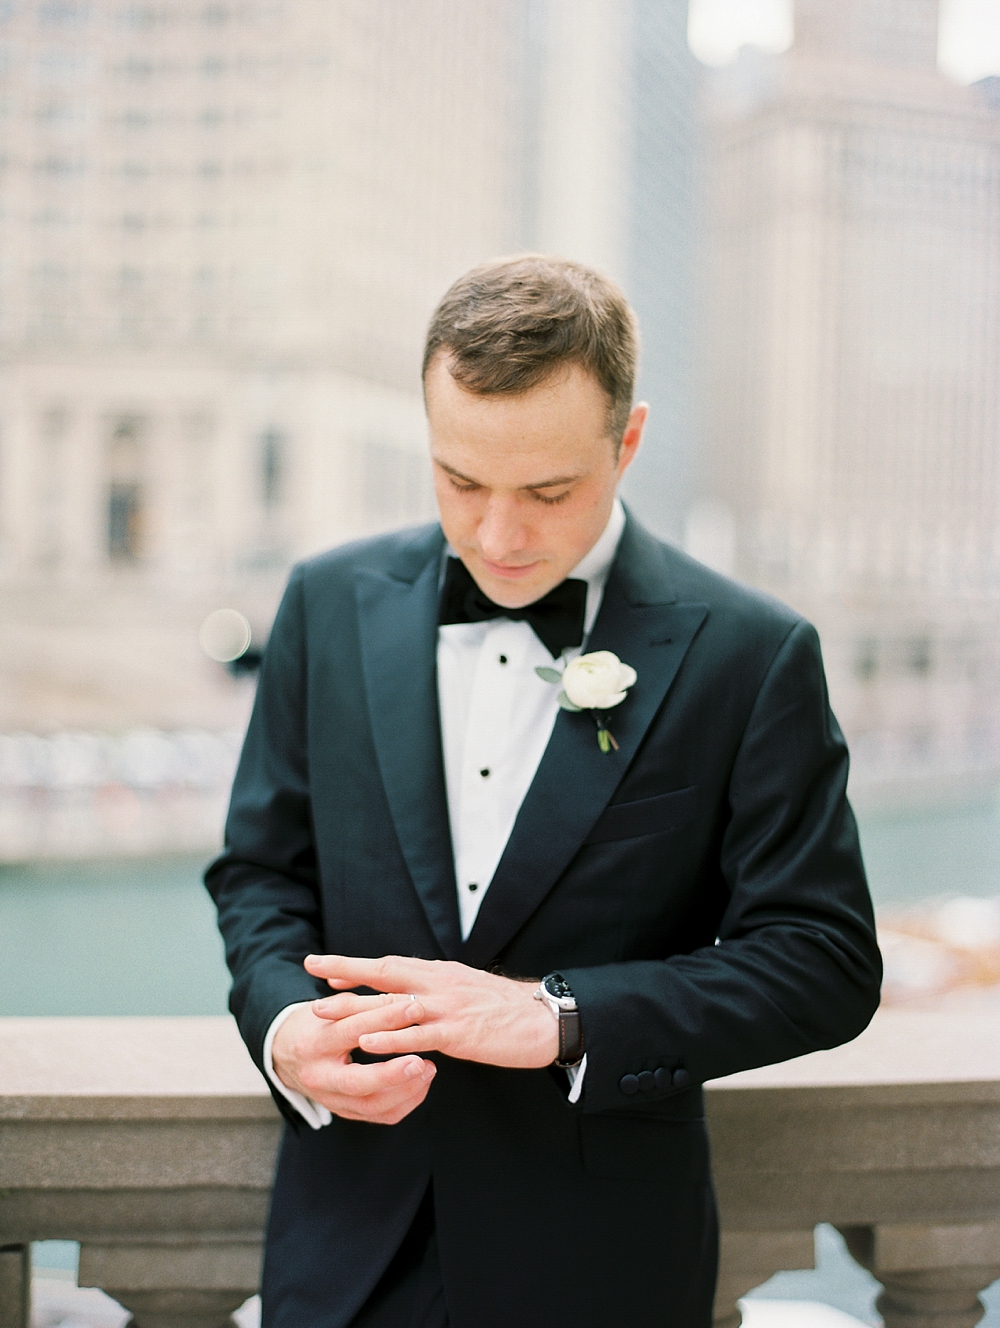 kristin-la-voie-photography-chicago-wedding-photographer-163